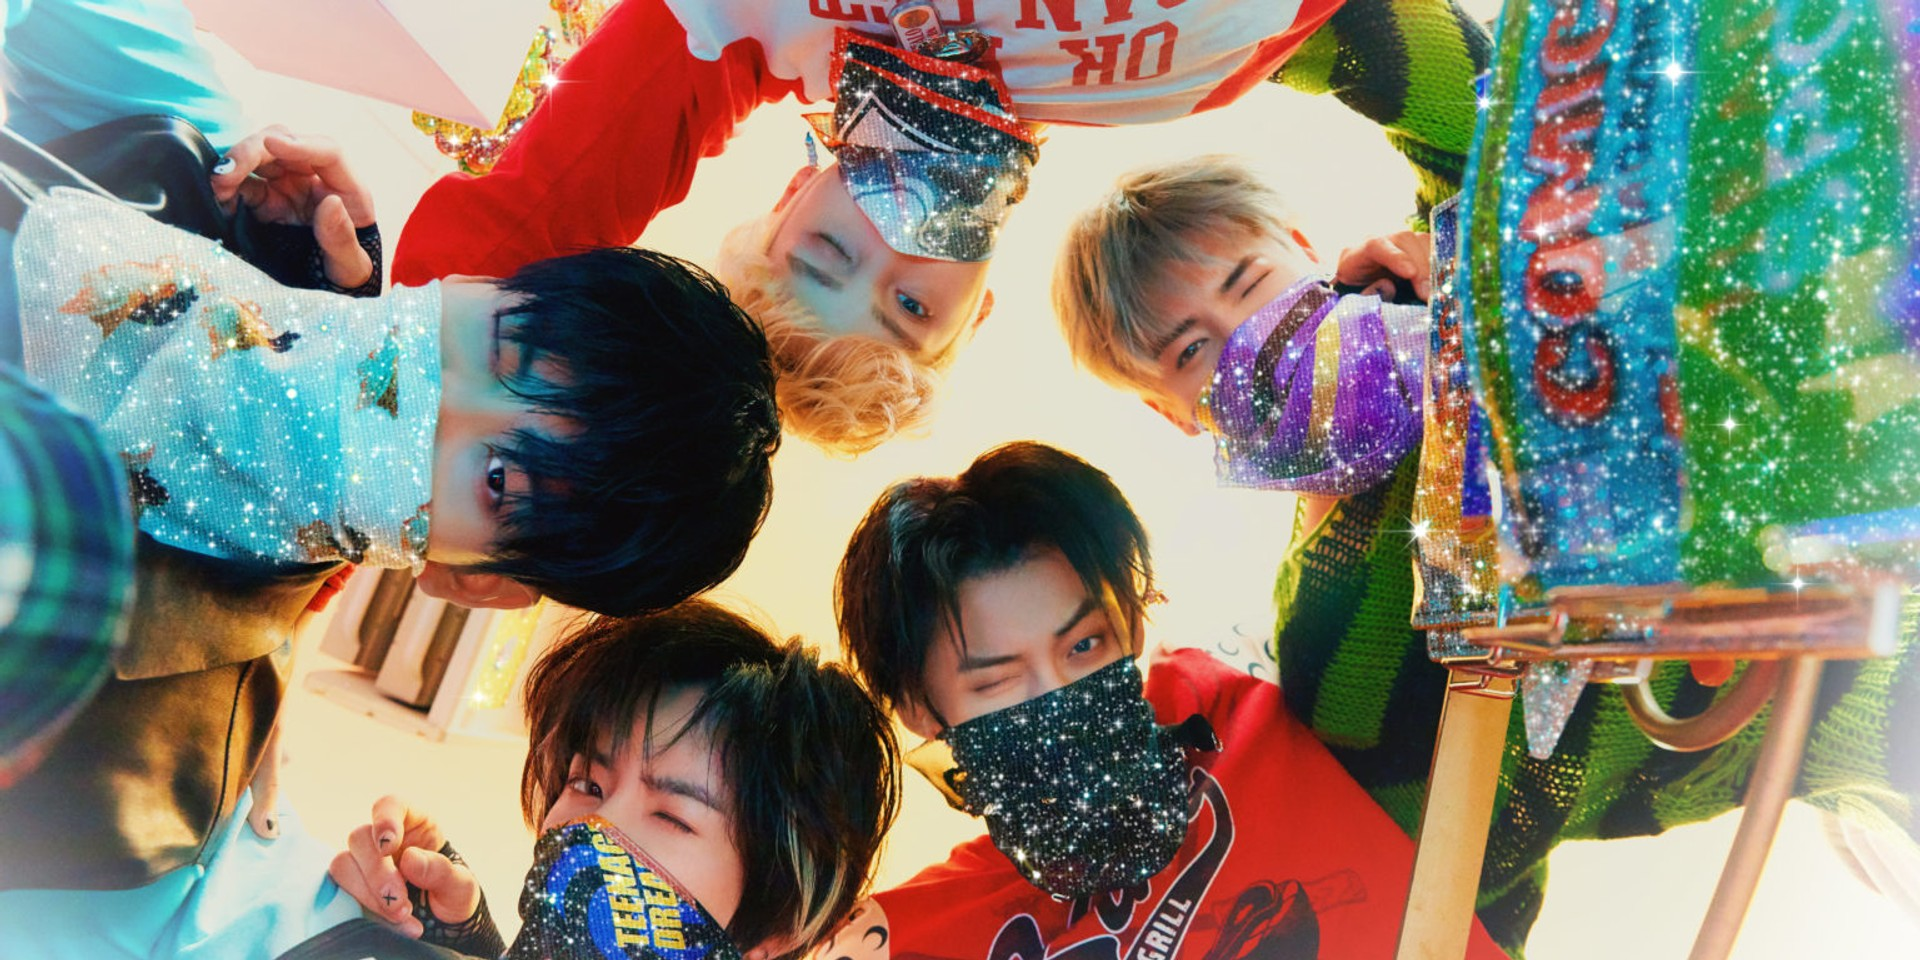 TXT to drop remix of '0X1=LOVESONG (I Know I Love You)' featuring MOD SUN - listen